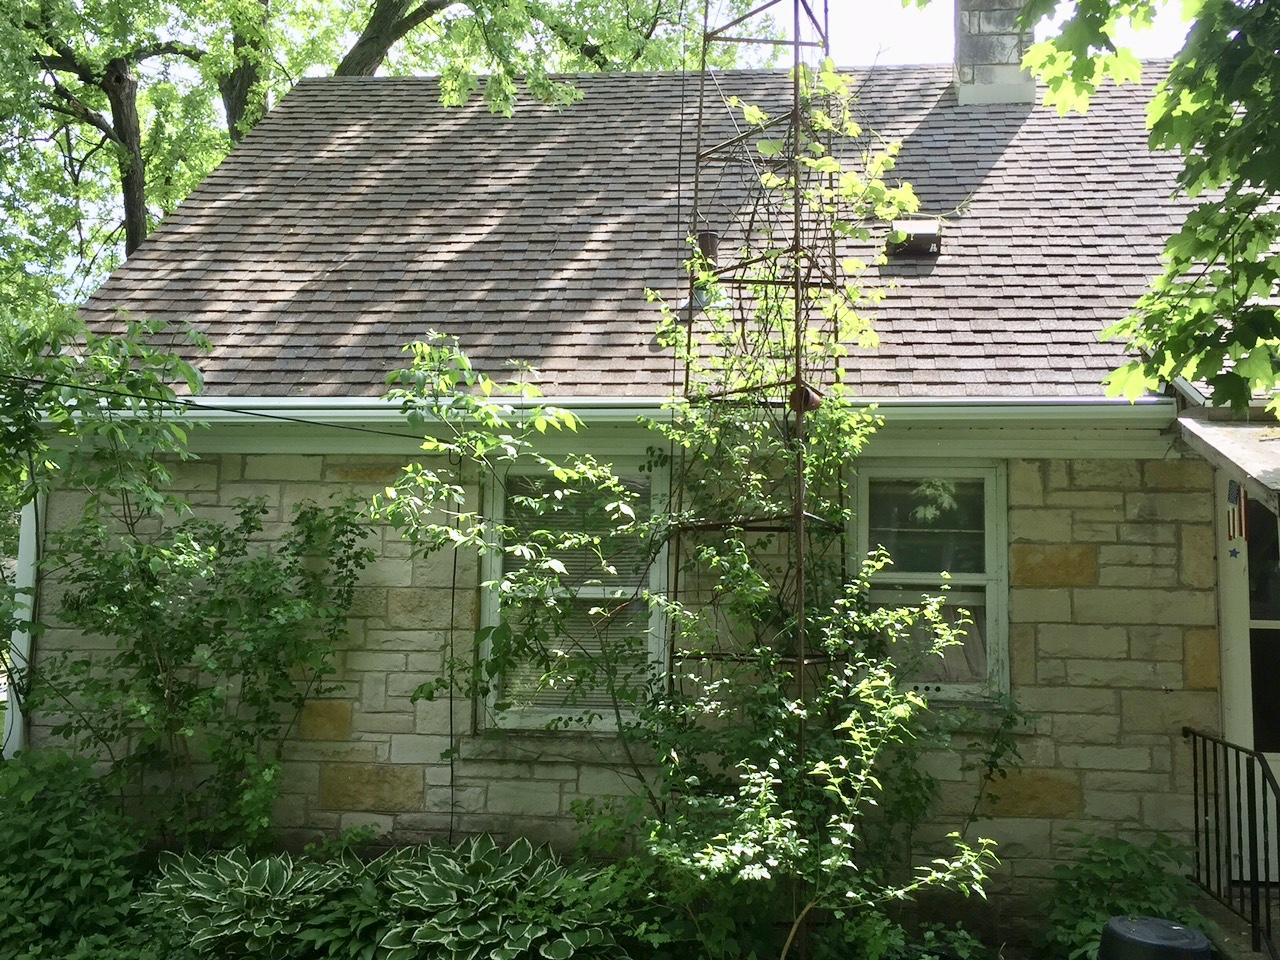 Cozy Cottage Like Home In Stoughton Gets LeafGuard Gutters - After Photo